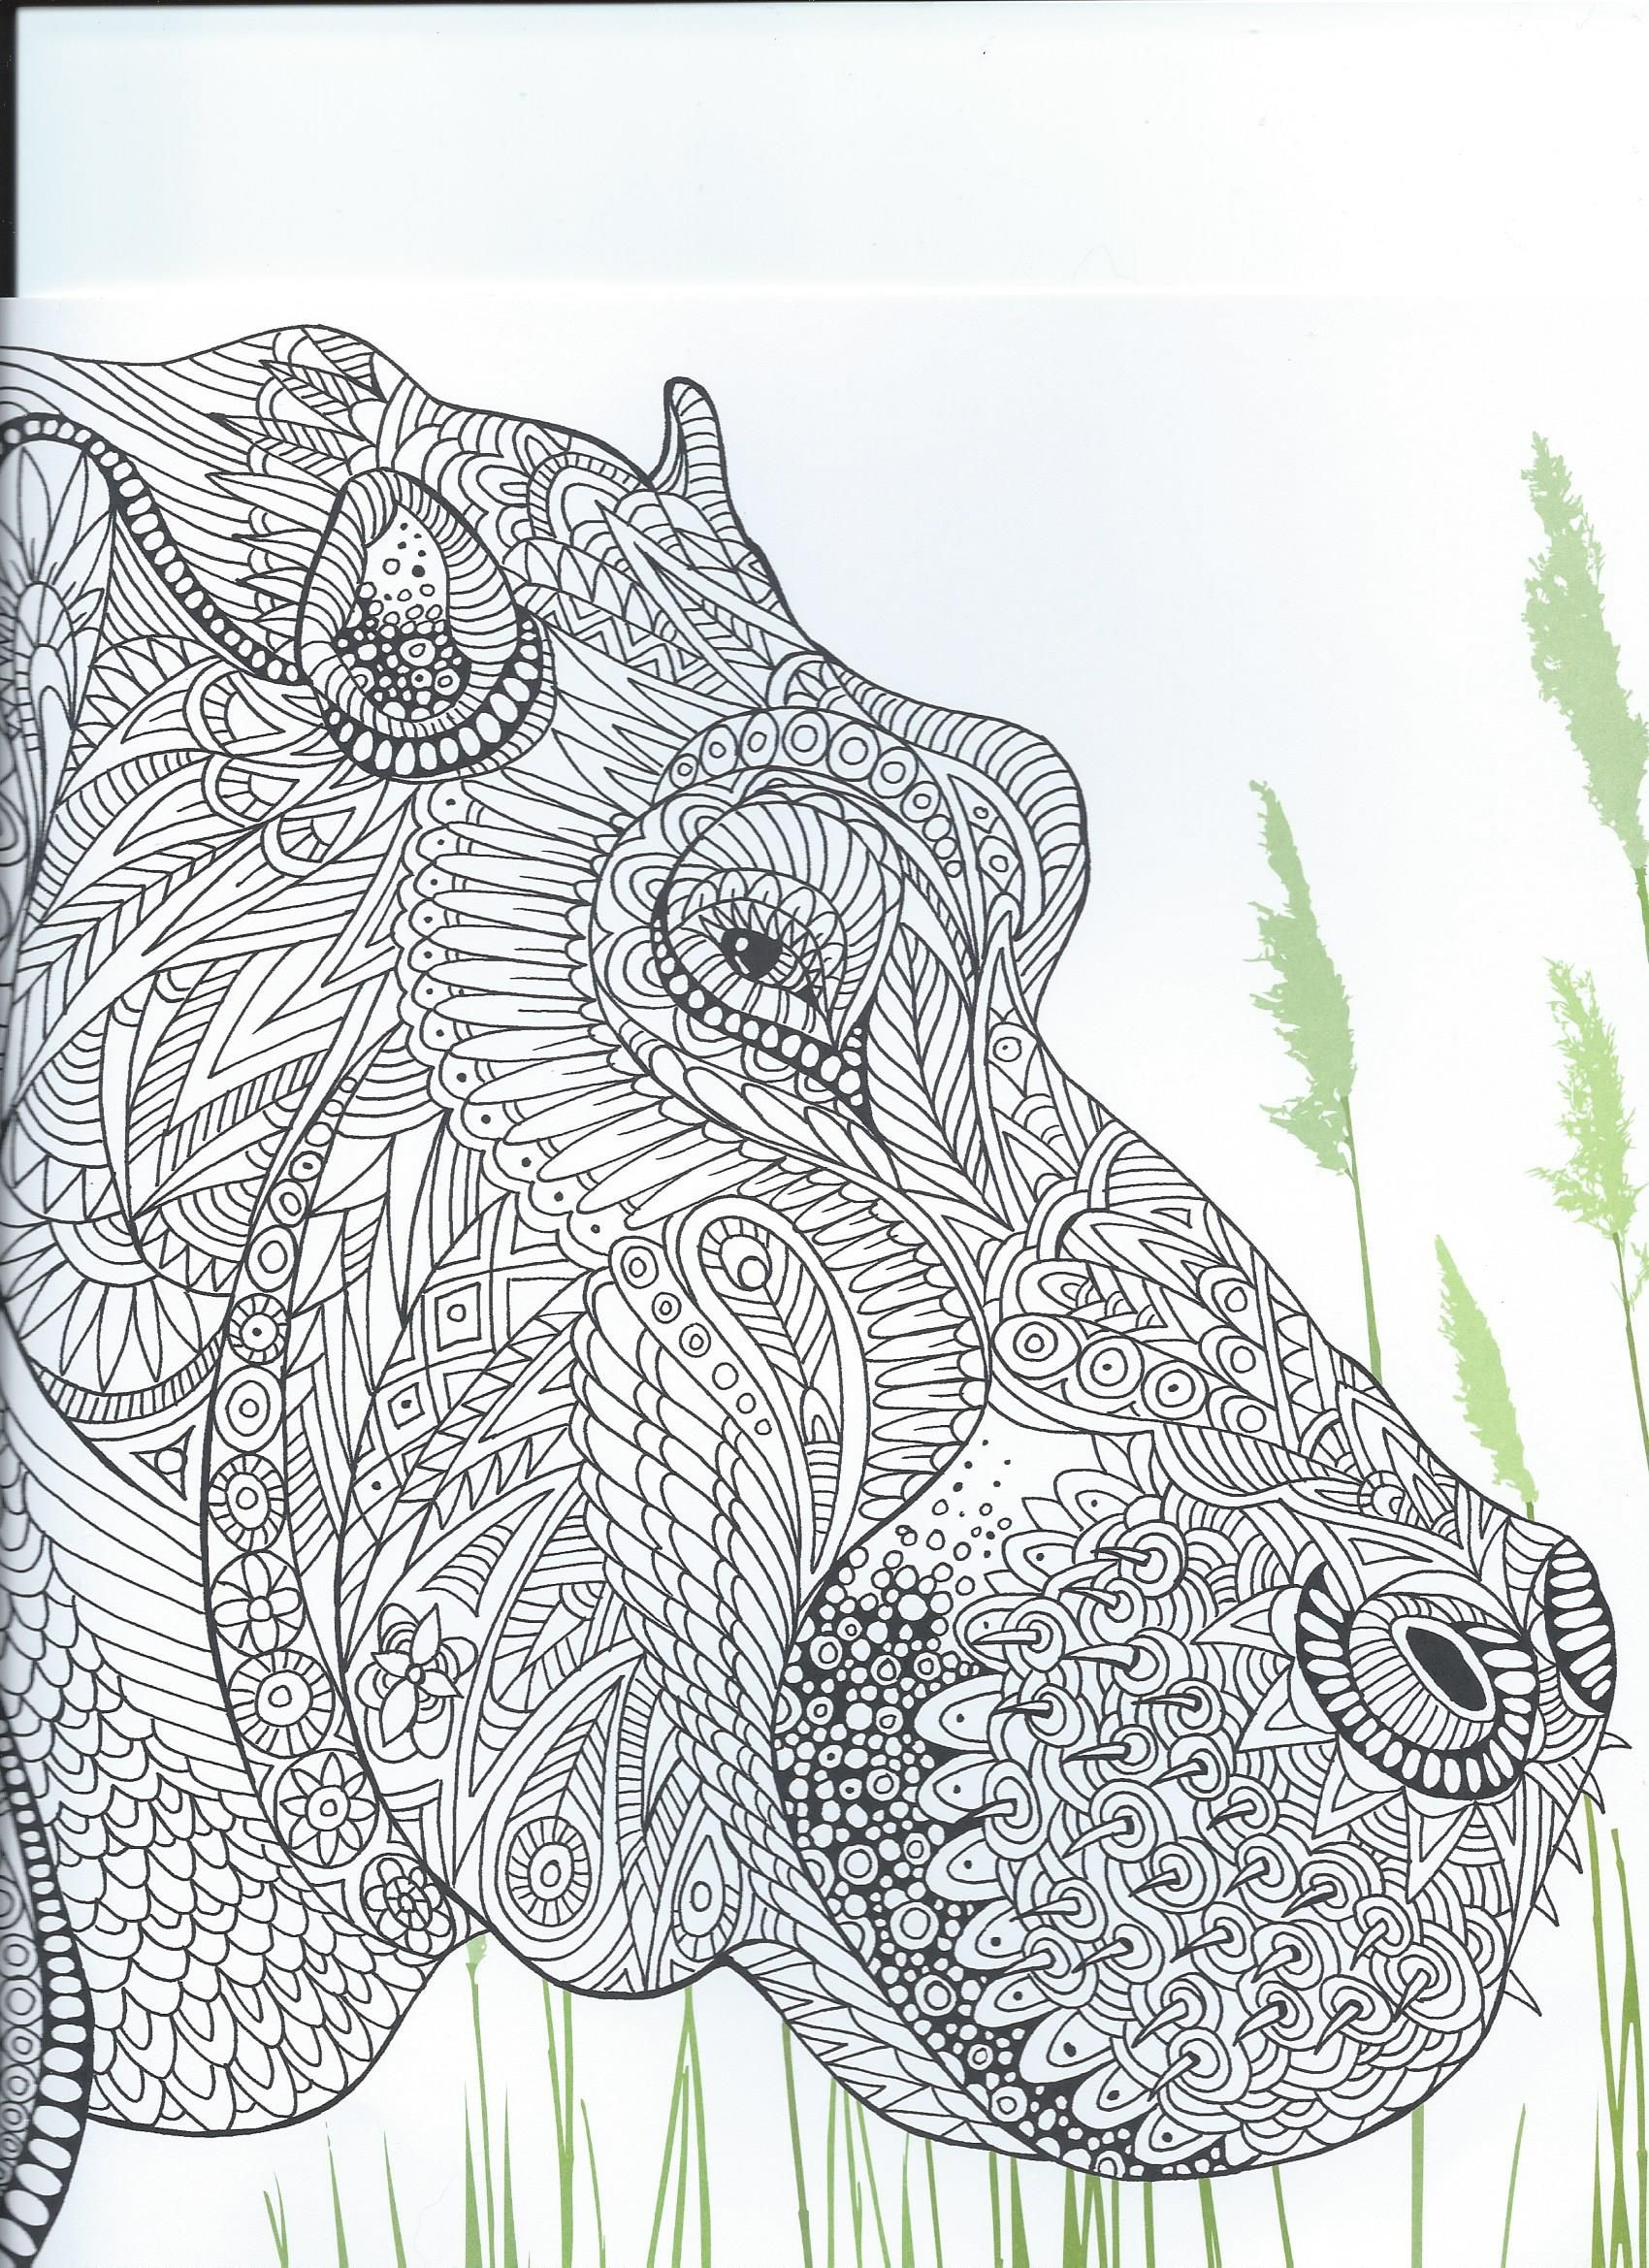 From the coloring book \